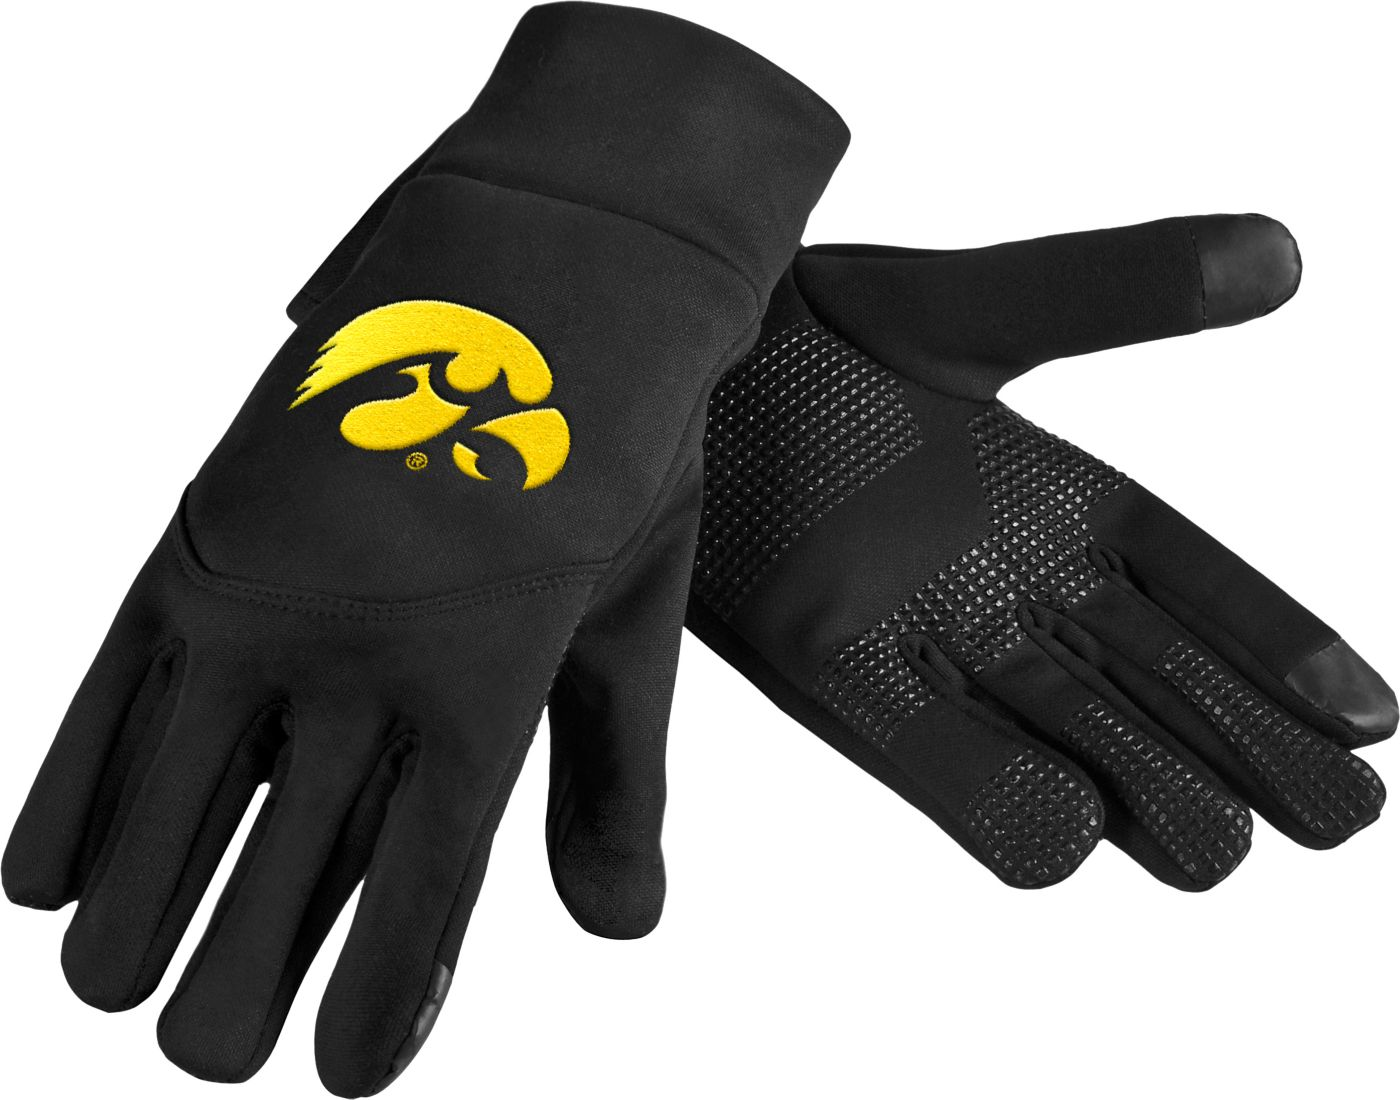 FOCO Iowa Hawkeyes Texting Gloves